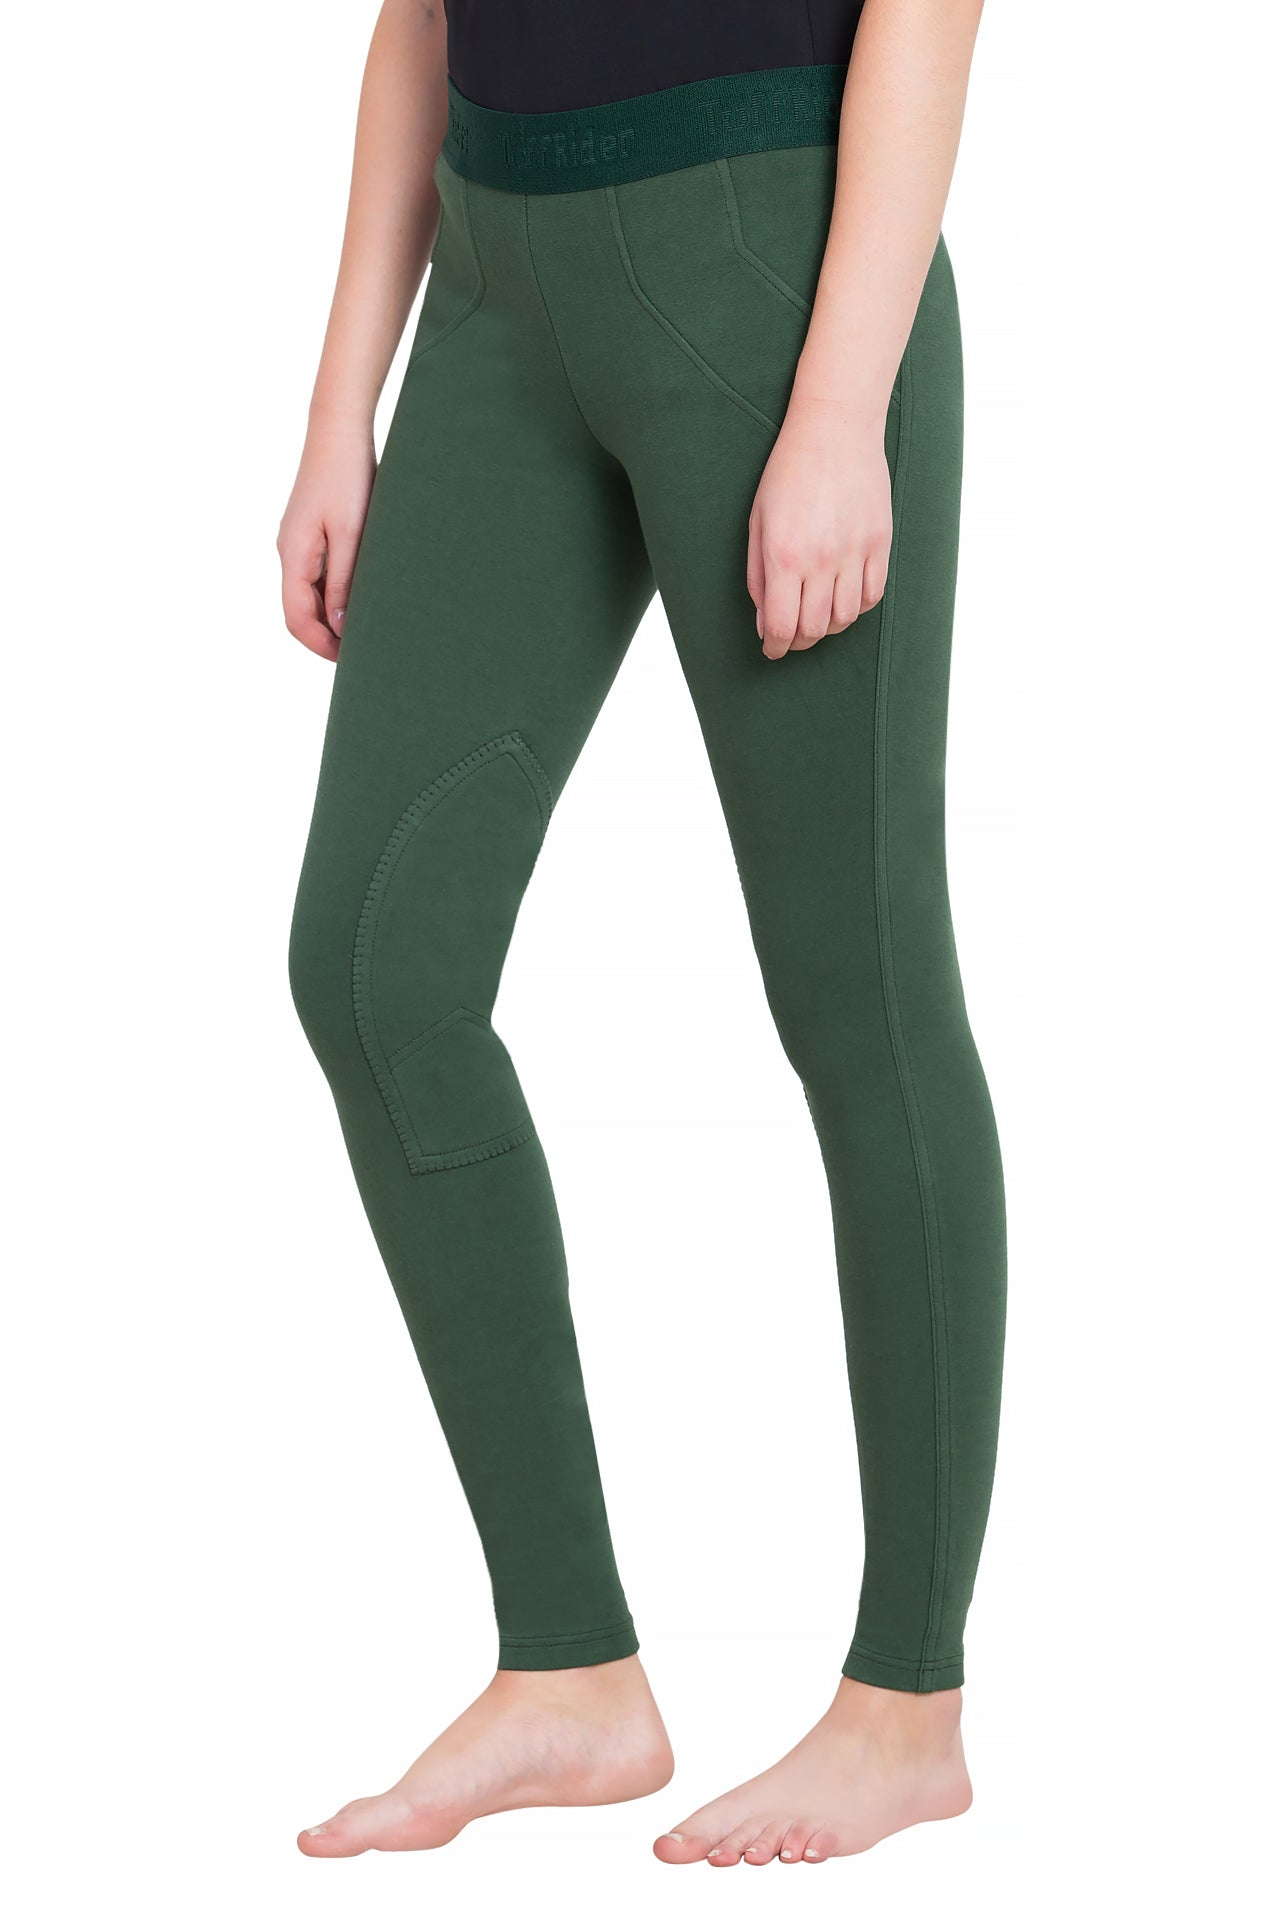 TuffRider Ladies Cotton Schoolers Riding Tights_1